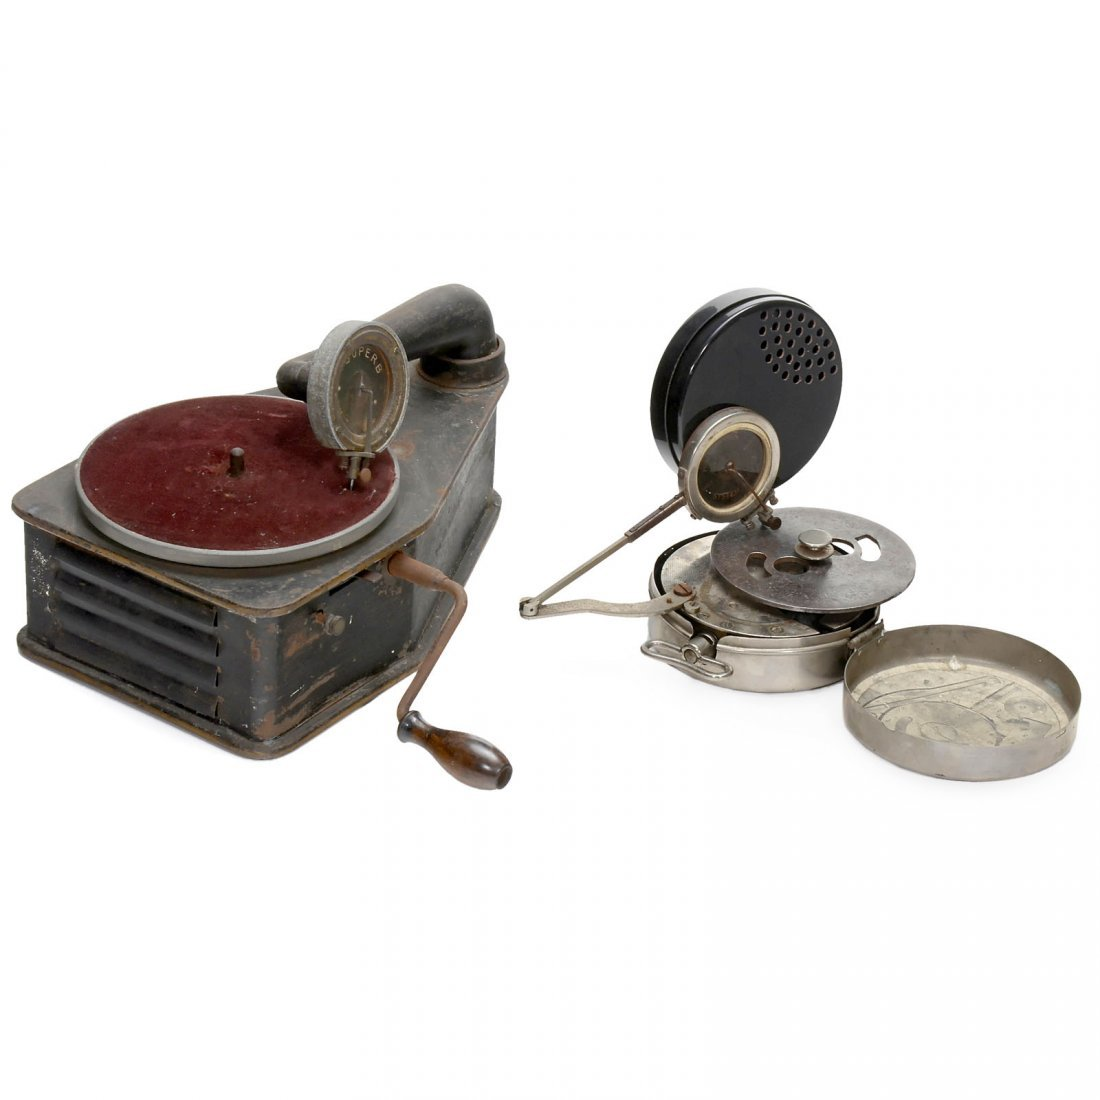 2 Minature Gramophones, from 1930